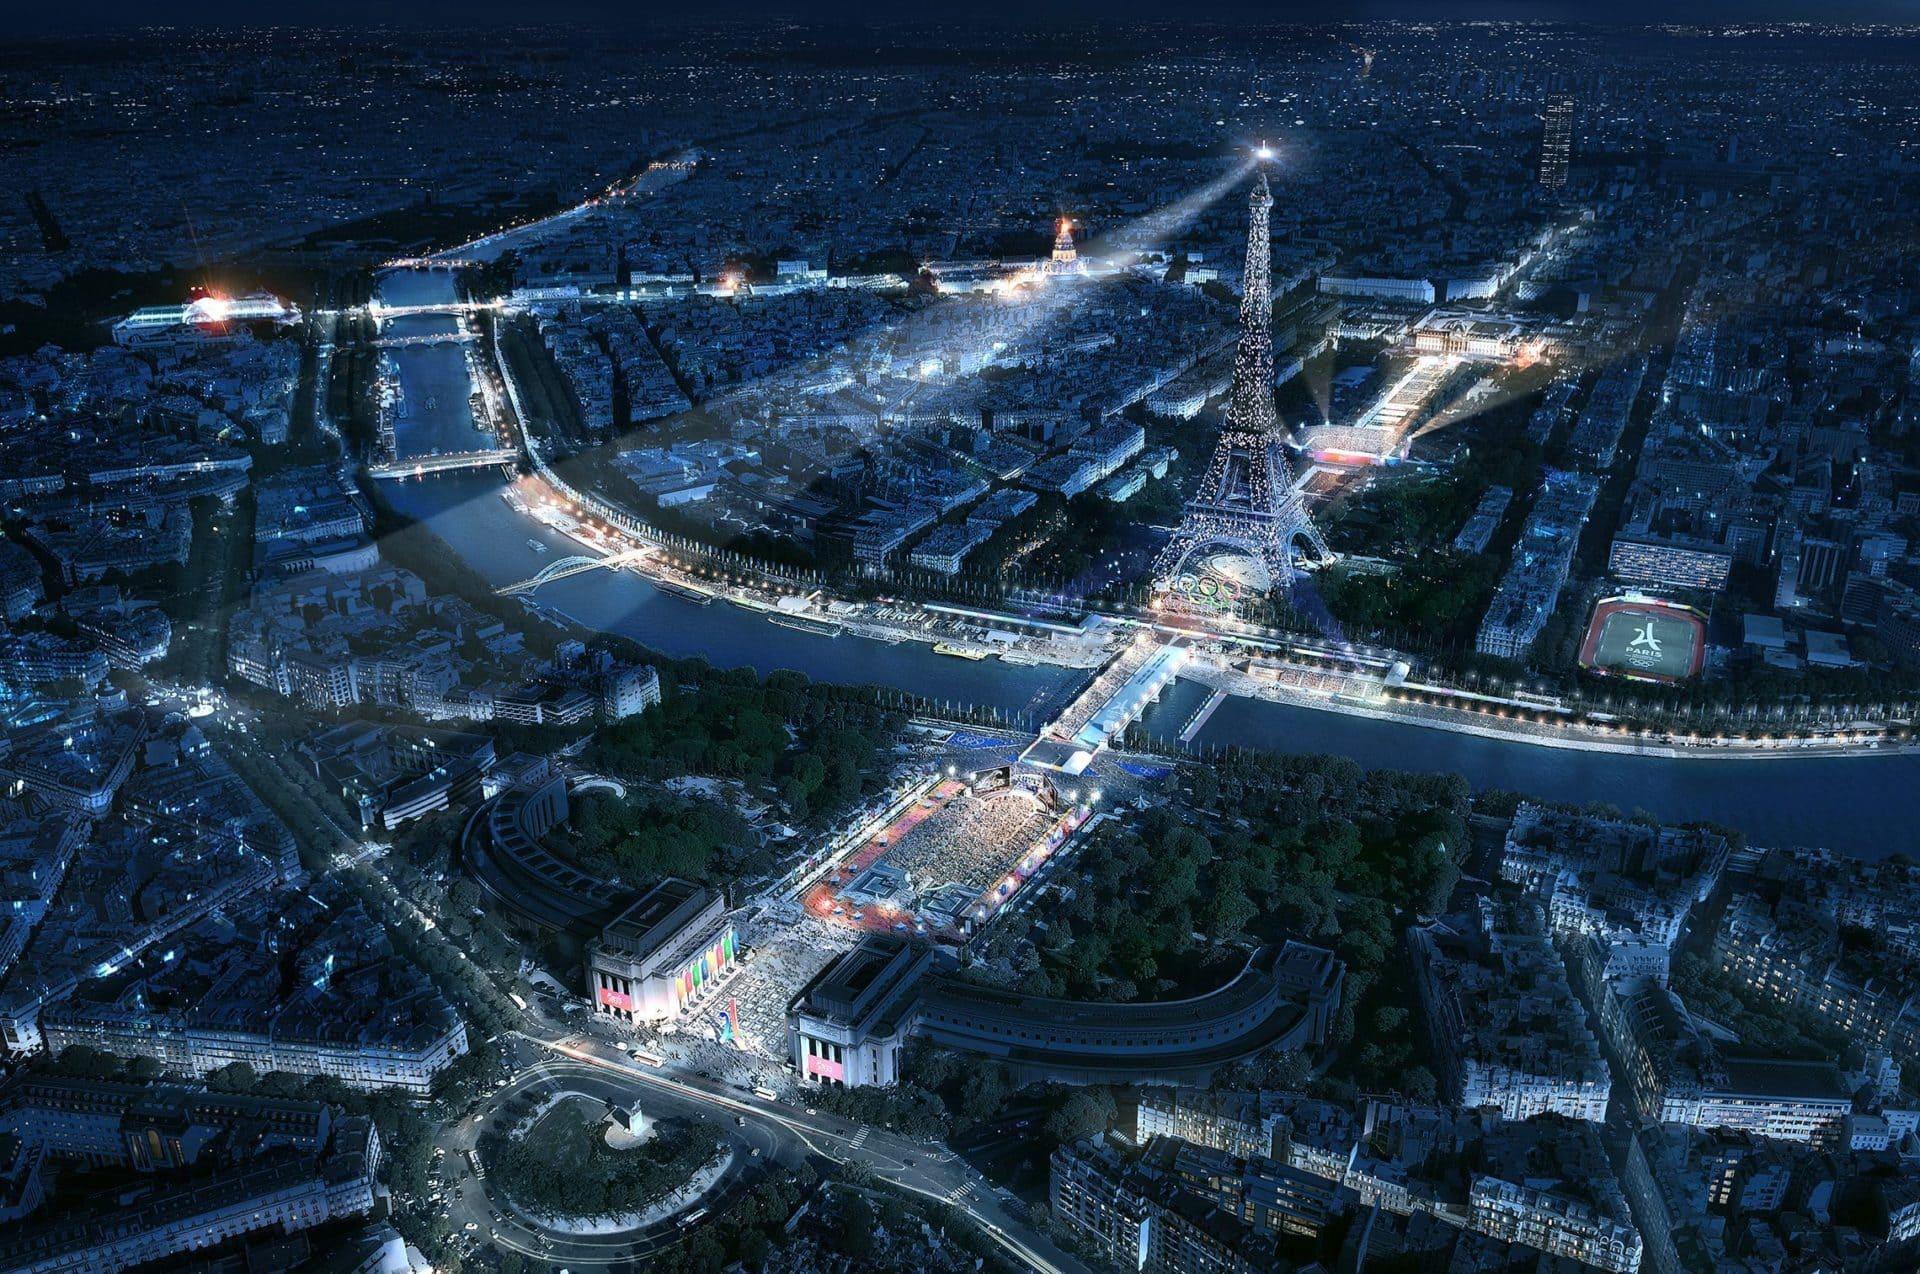 Paris 2024 Summer Olympics: the Champ de Mars is having a makeover